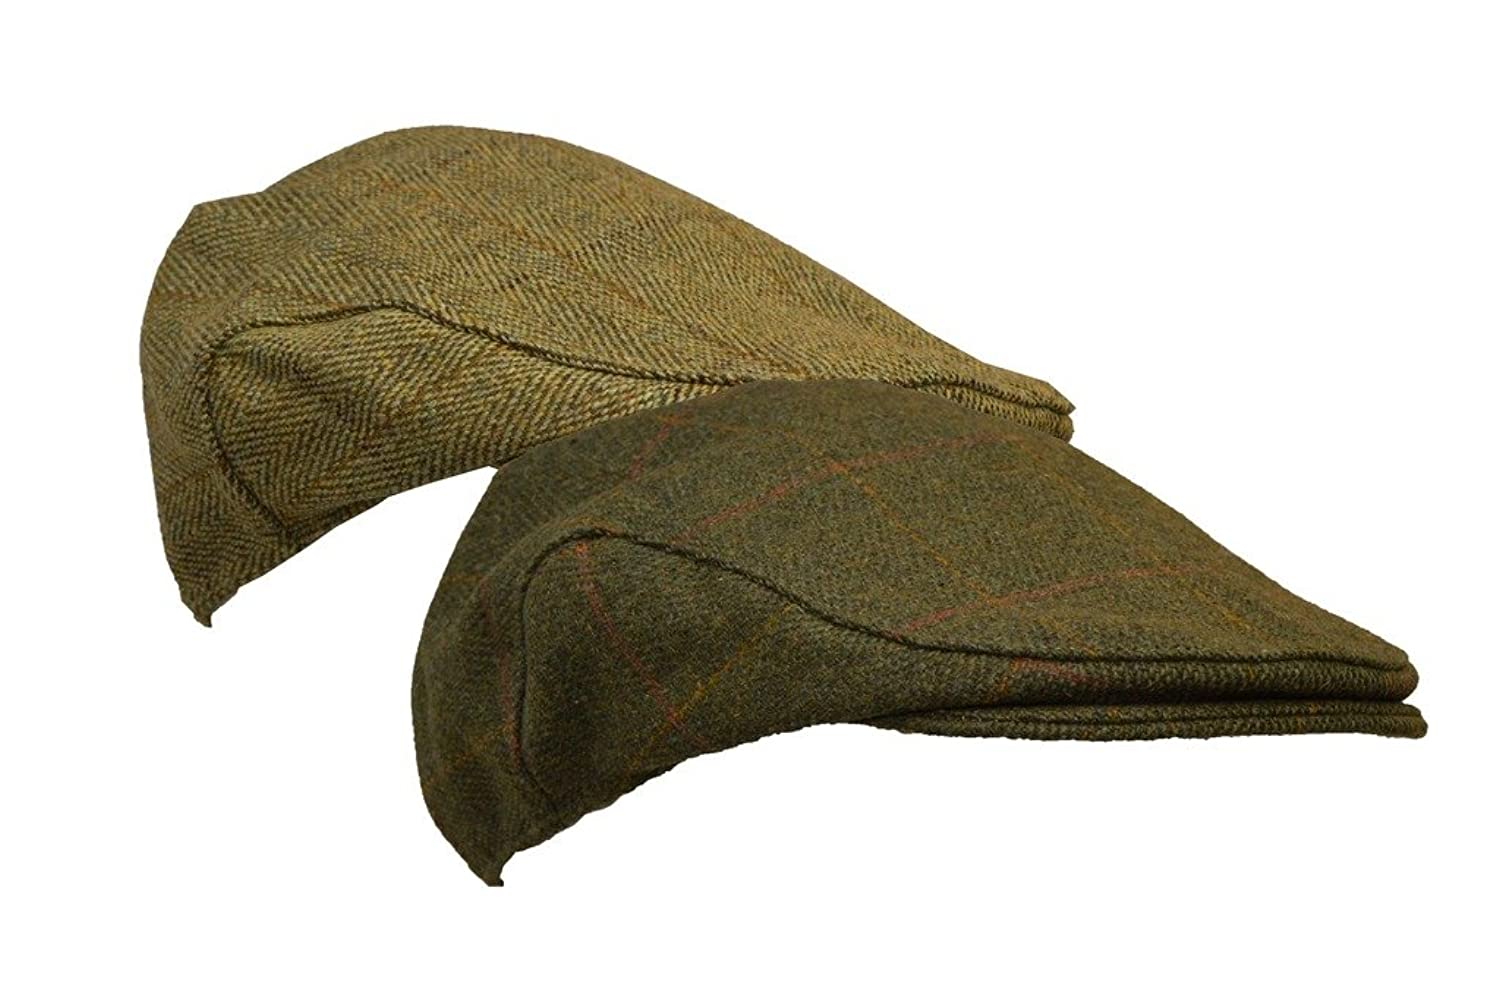 1940s Style Mens Hats Mens Derby Tweed Flat Cap Hunting Shooting Countrywear Hat $22.02 AT vintagedancer.com